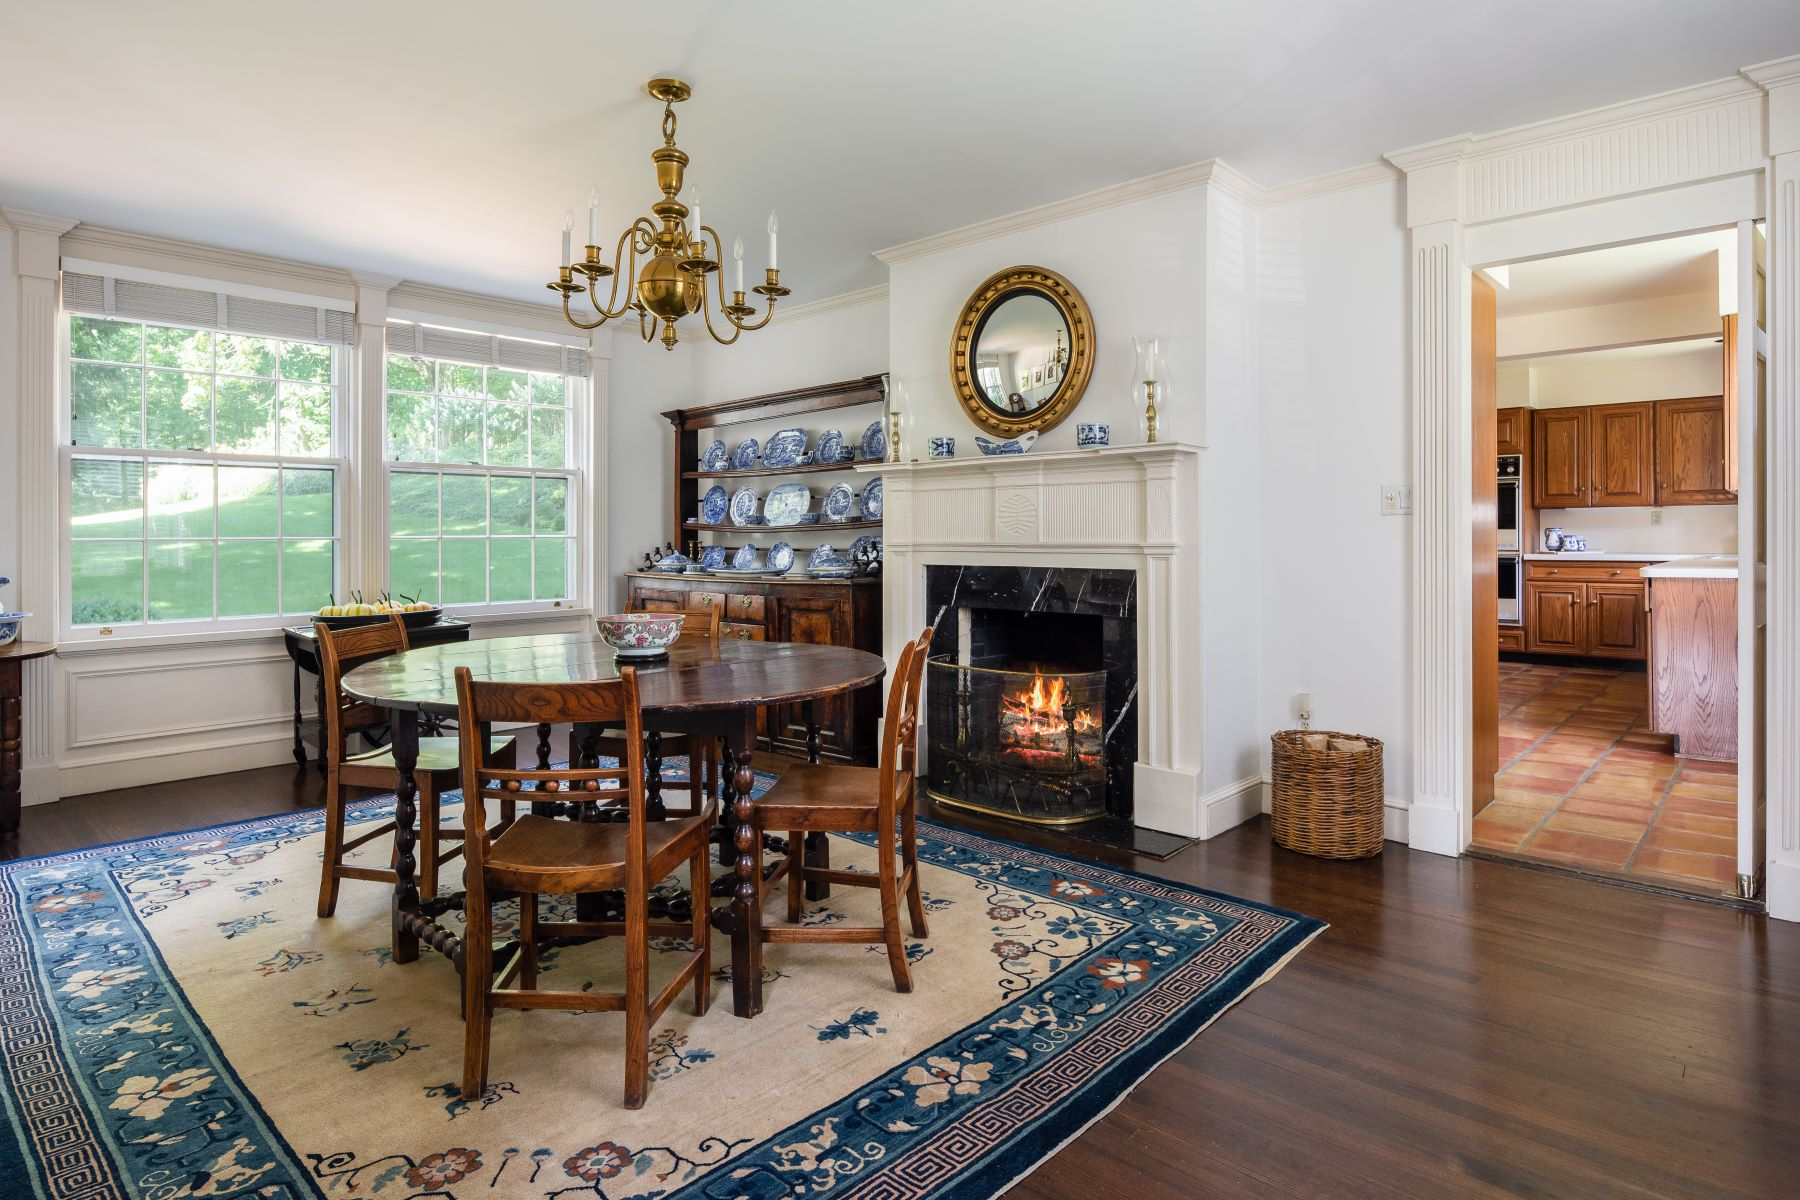 Additional photo for property listing at 129 Fox Lane 129 Fox Lane Bedford Corners, New York 10549 United States